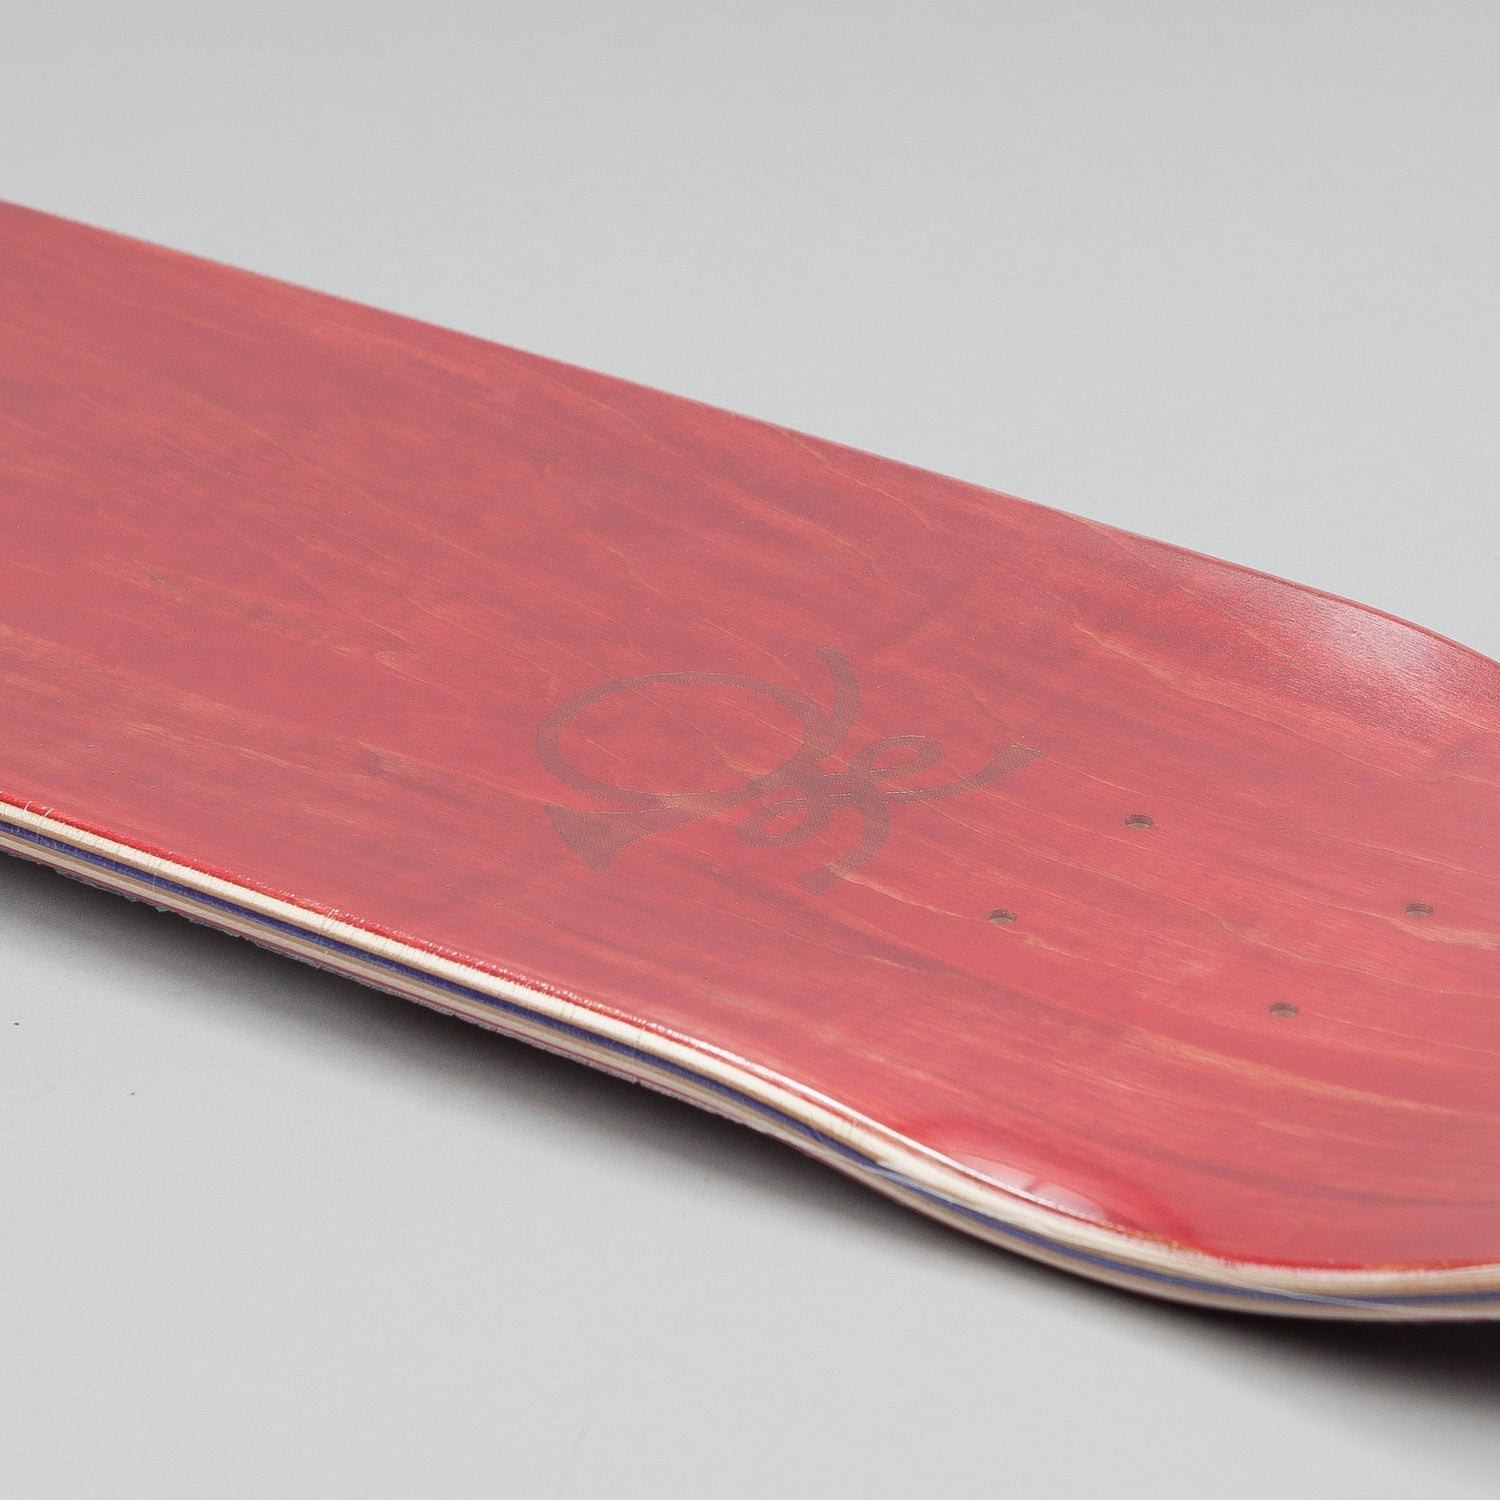 The National Skateboard Co X Post NS Deck Burgundy 8""